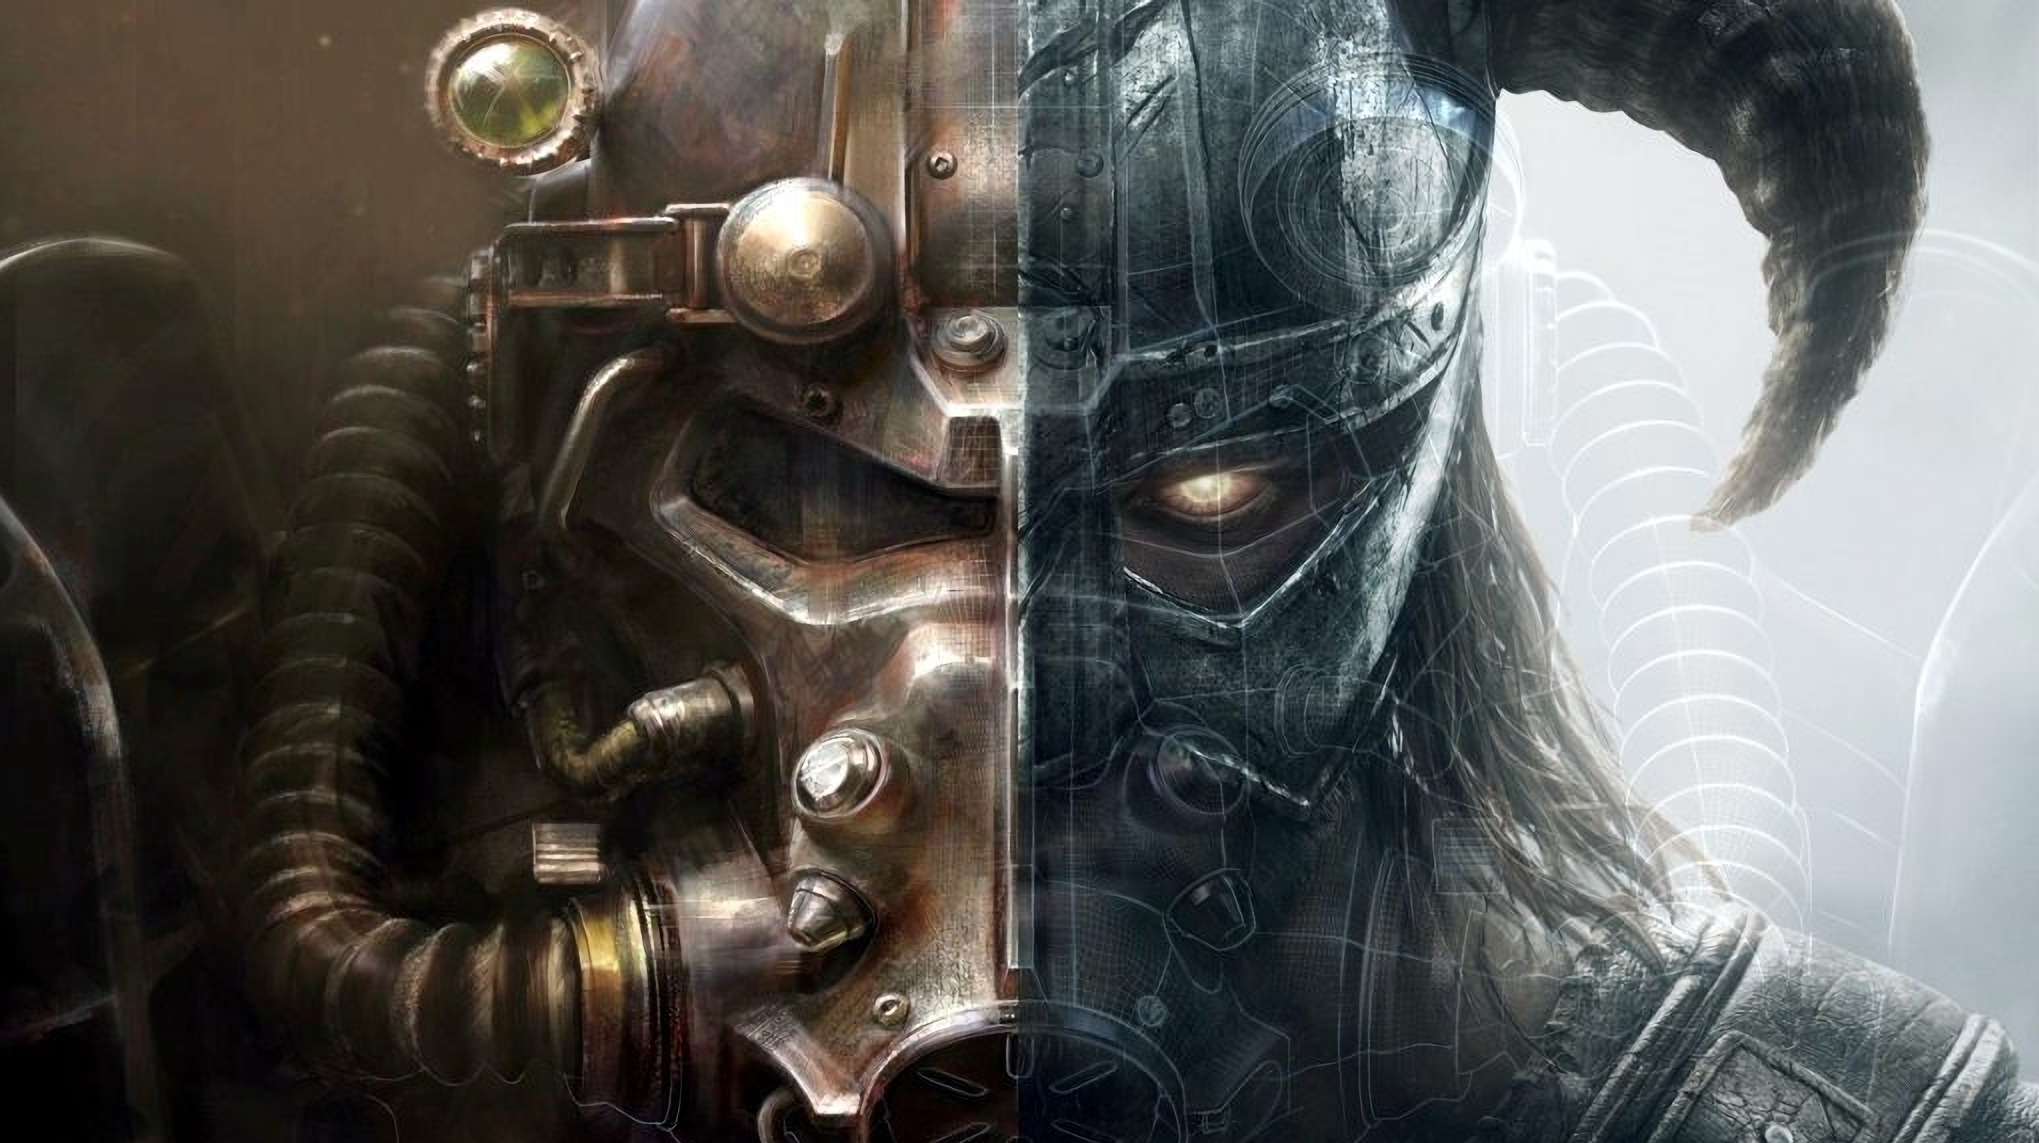 FPS Boost technology arrives on Skyrim, Fallout 4 and Fallout 76: performances are remarkable but there are trade-offs - technical analysis